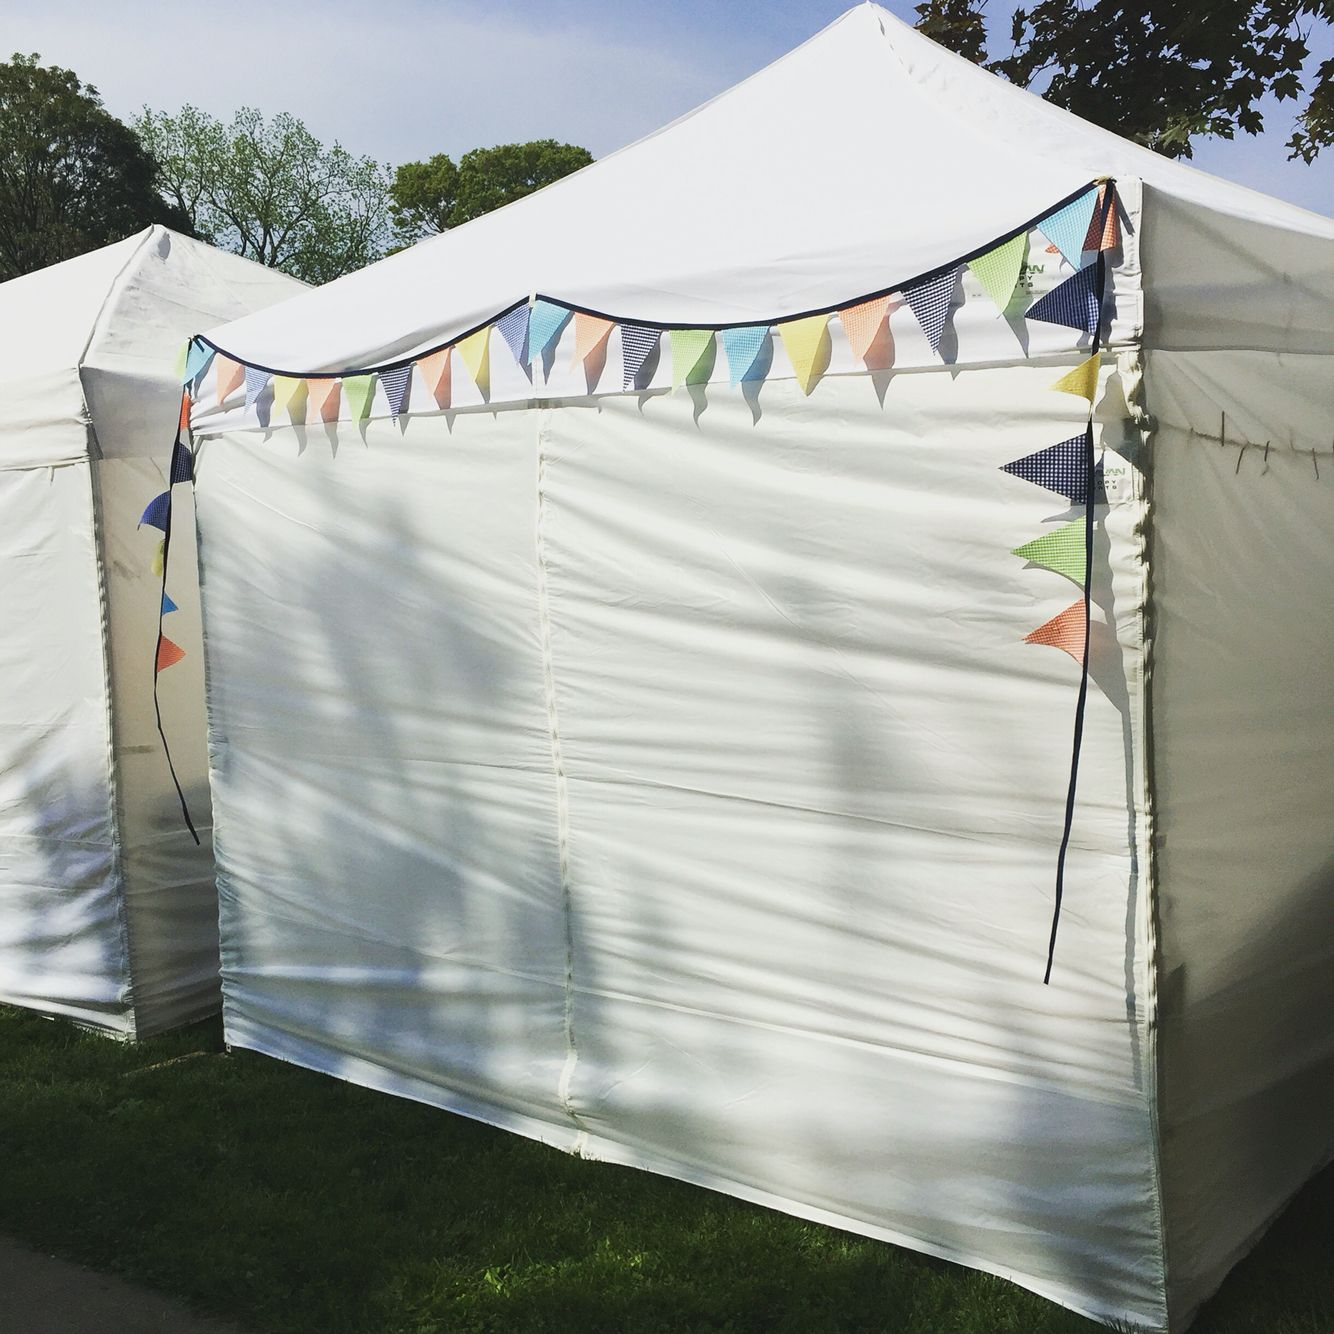 10x10 white canopy tent with pennant banner - craft show setup ideas & 10x10 white canopy tent with pennant banner - craft show setup ...